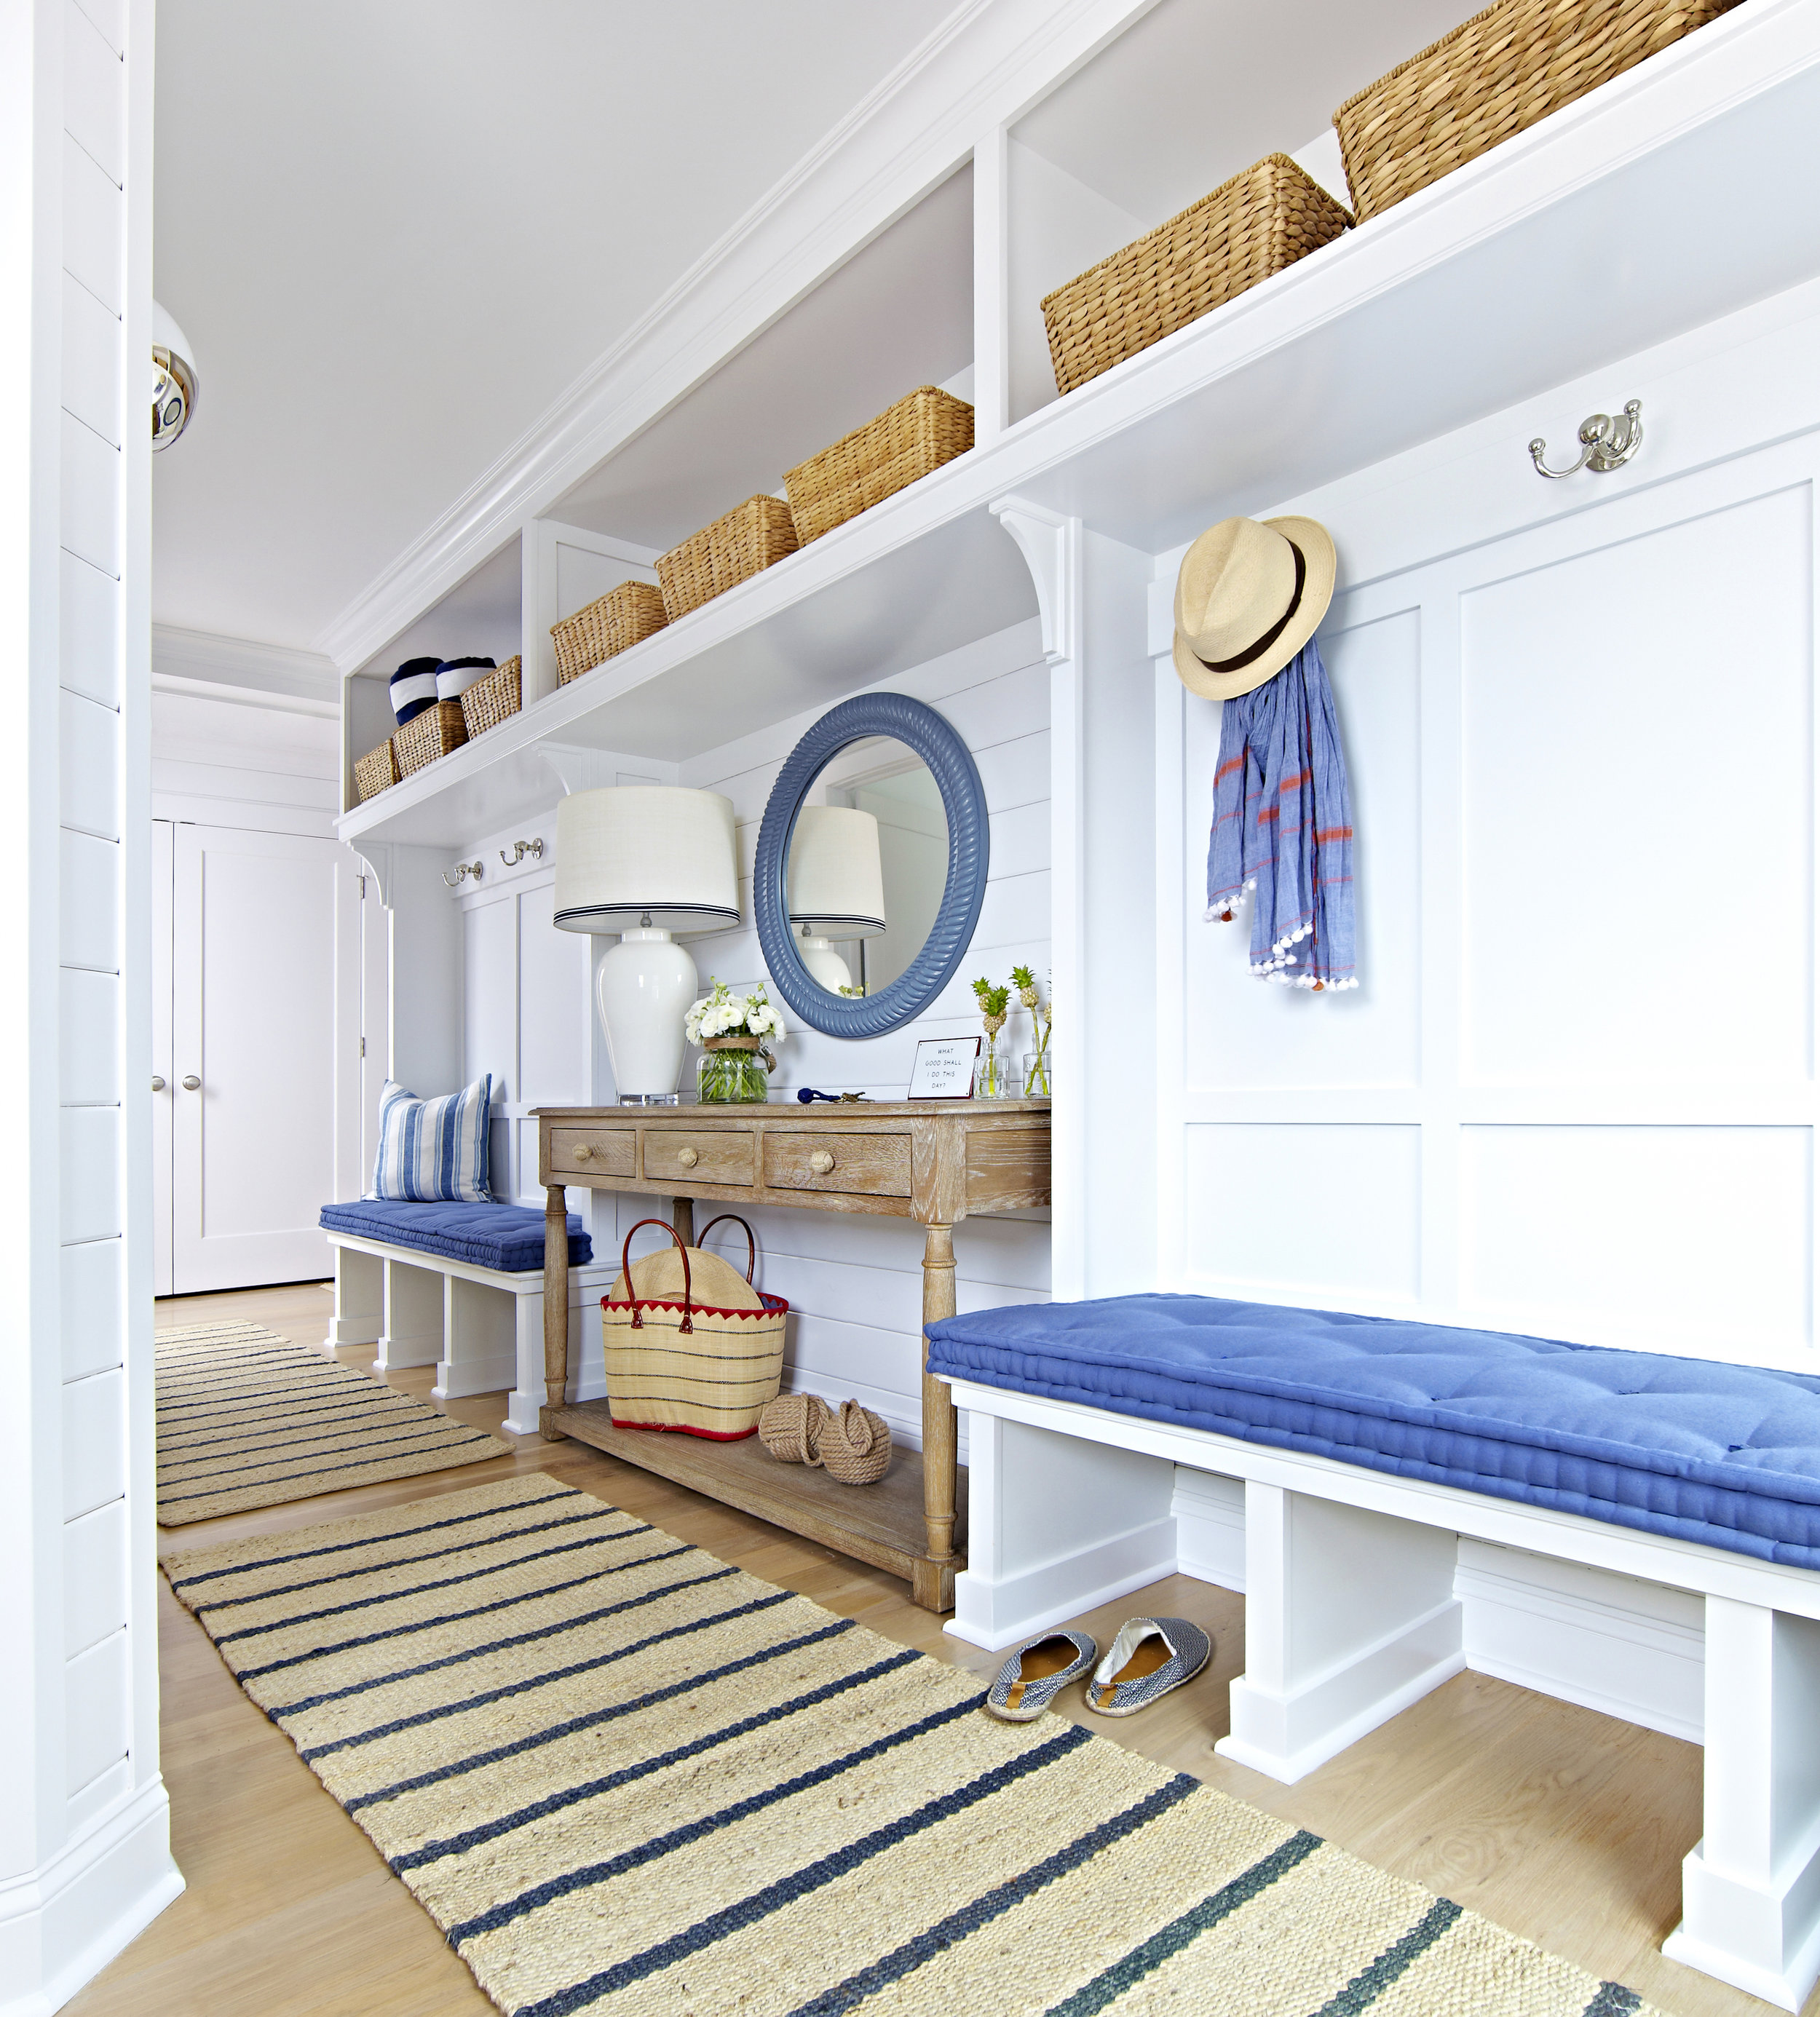 2.Bay Head Beach Bungalow by Chango & Co. - Mud Room Entry View.jpg